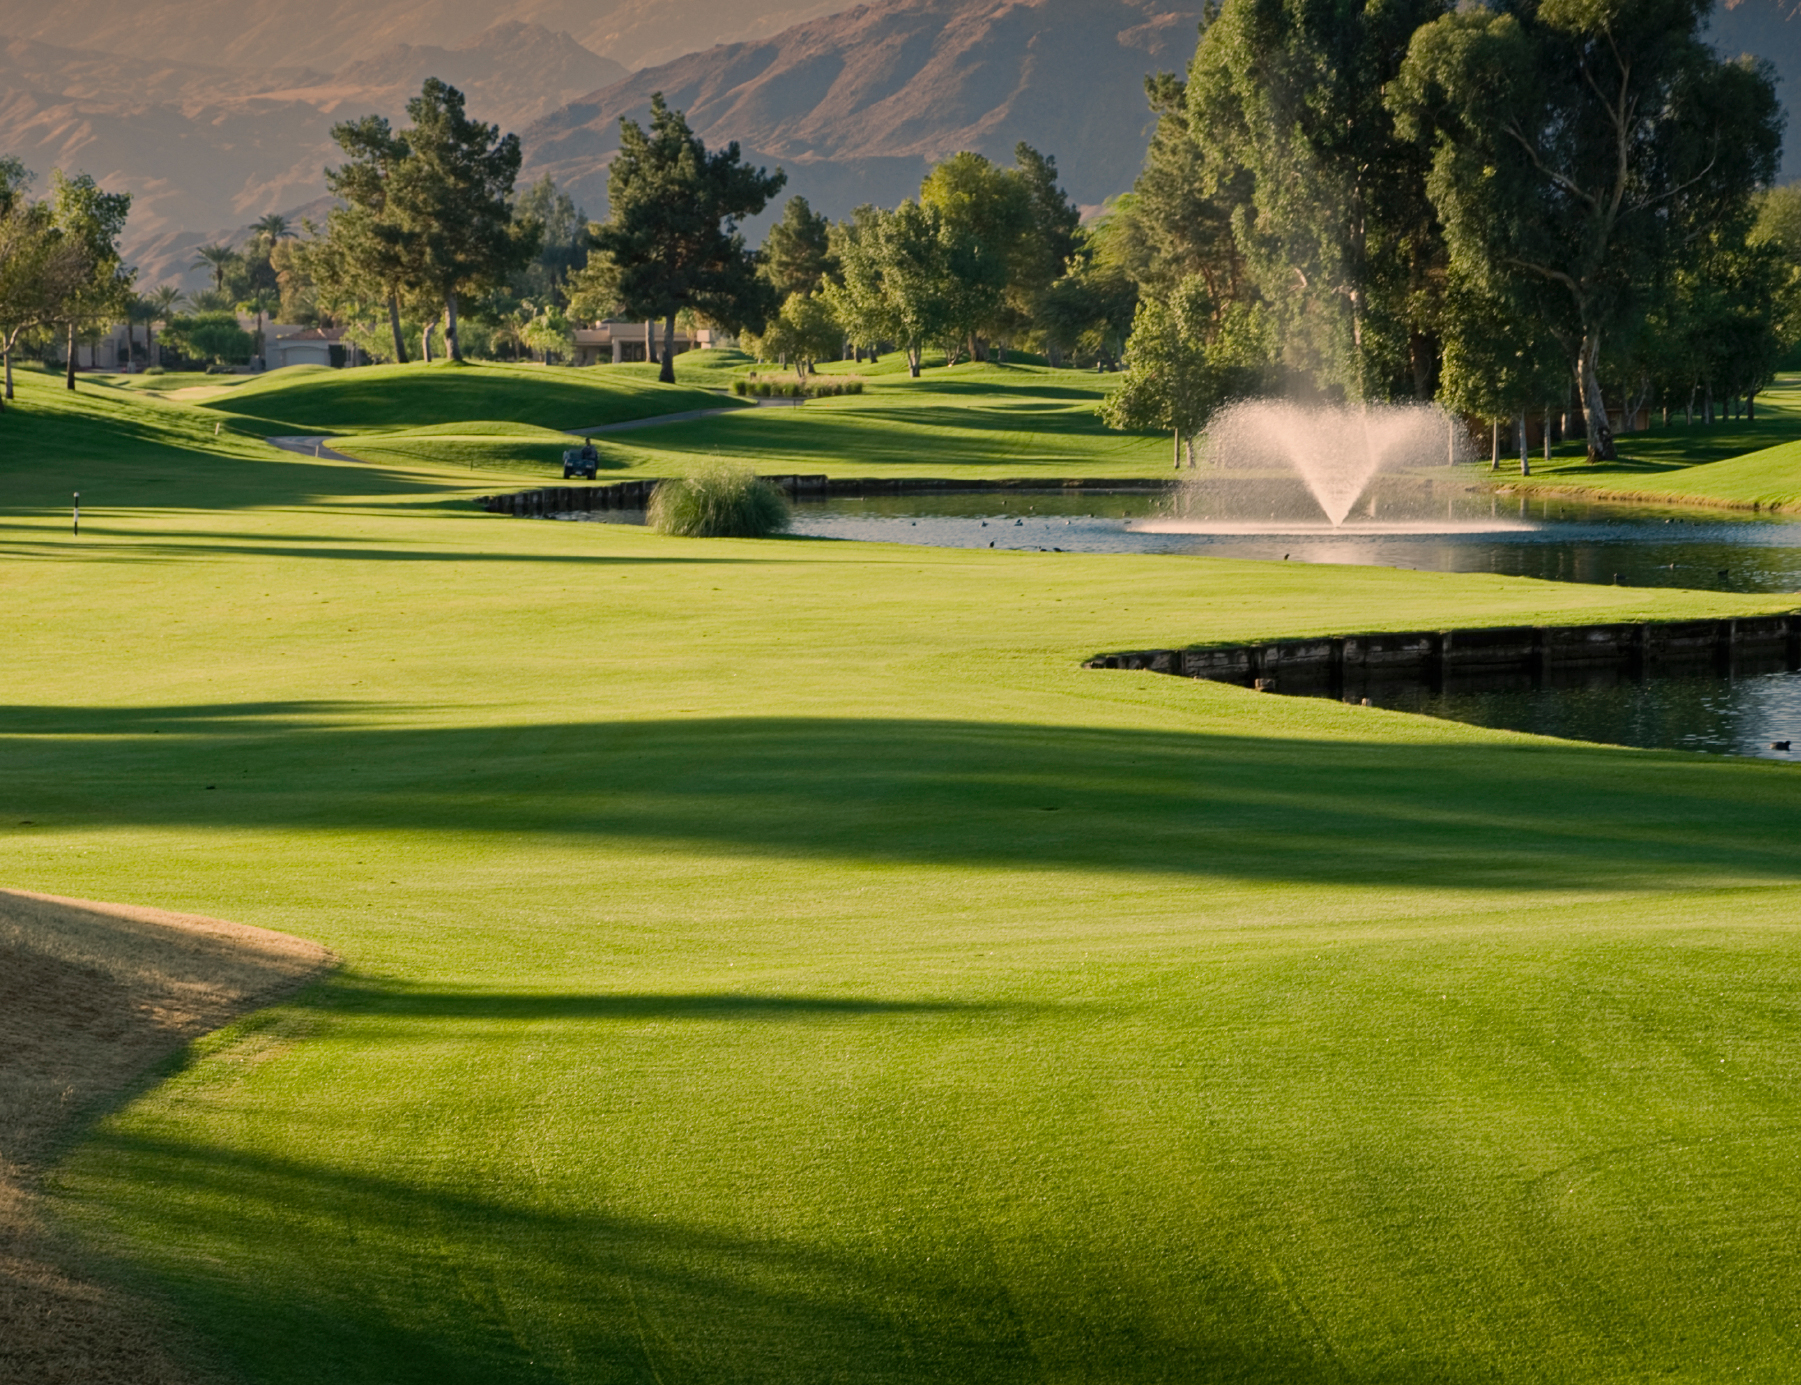 Variations in soil or water composition can have profound effects on turf health